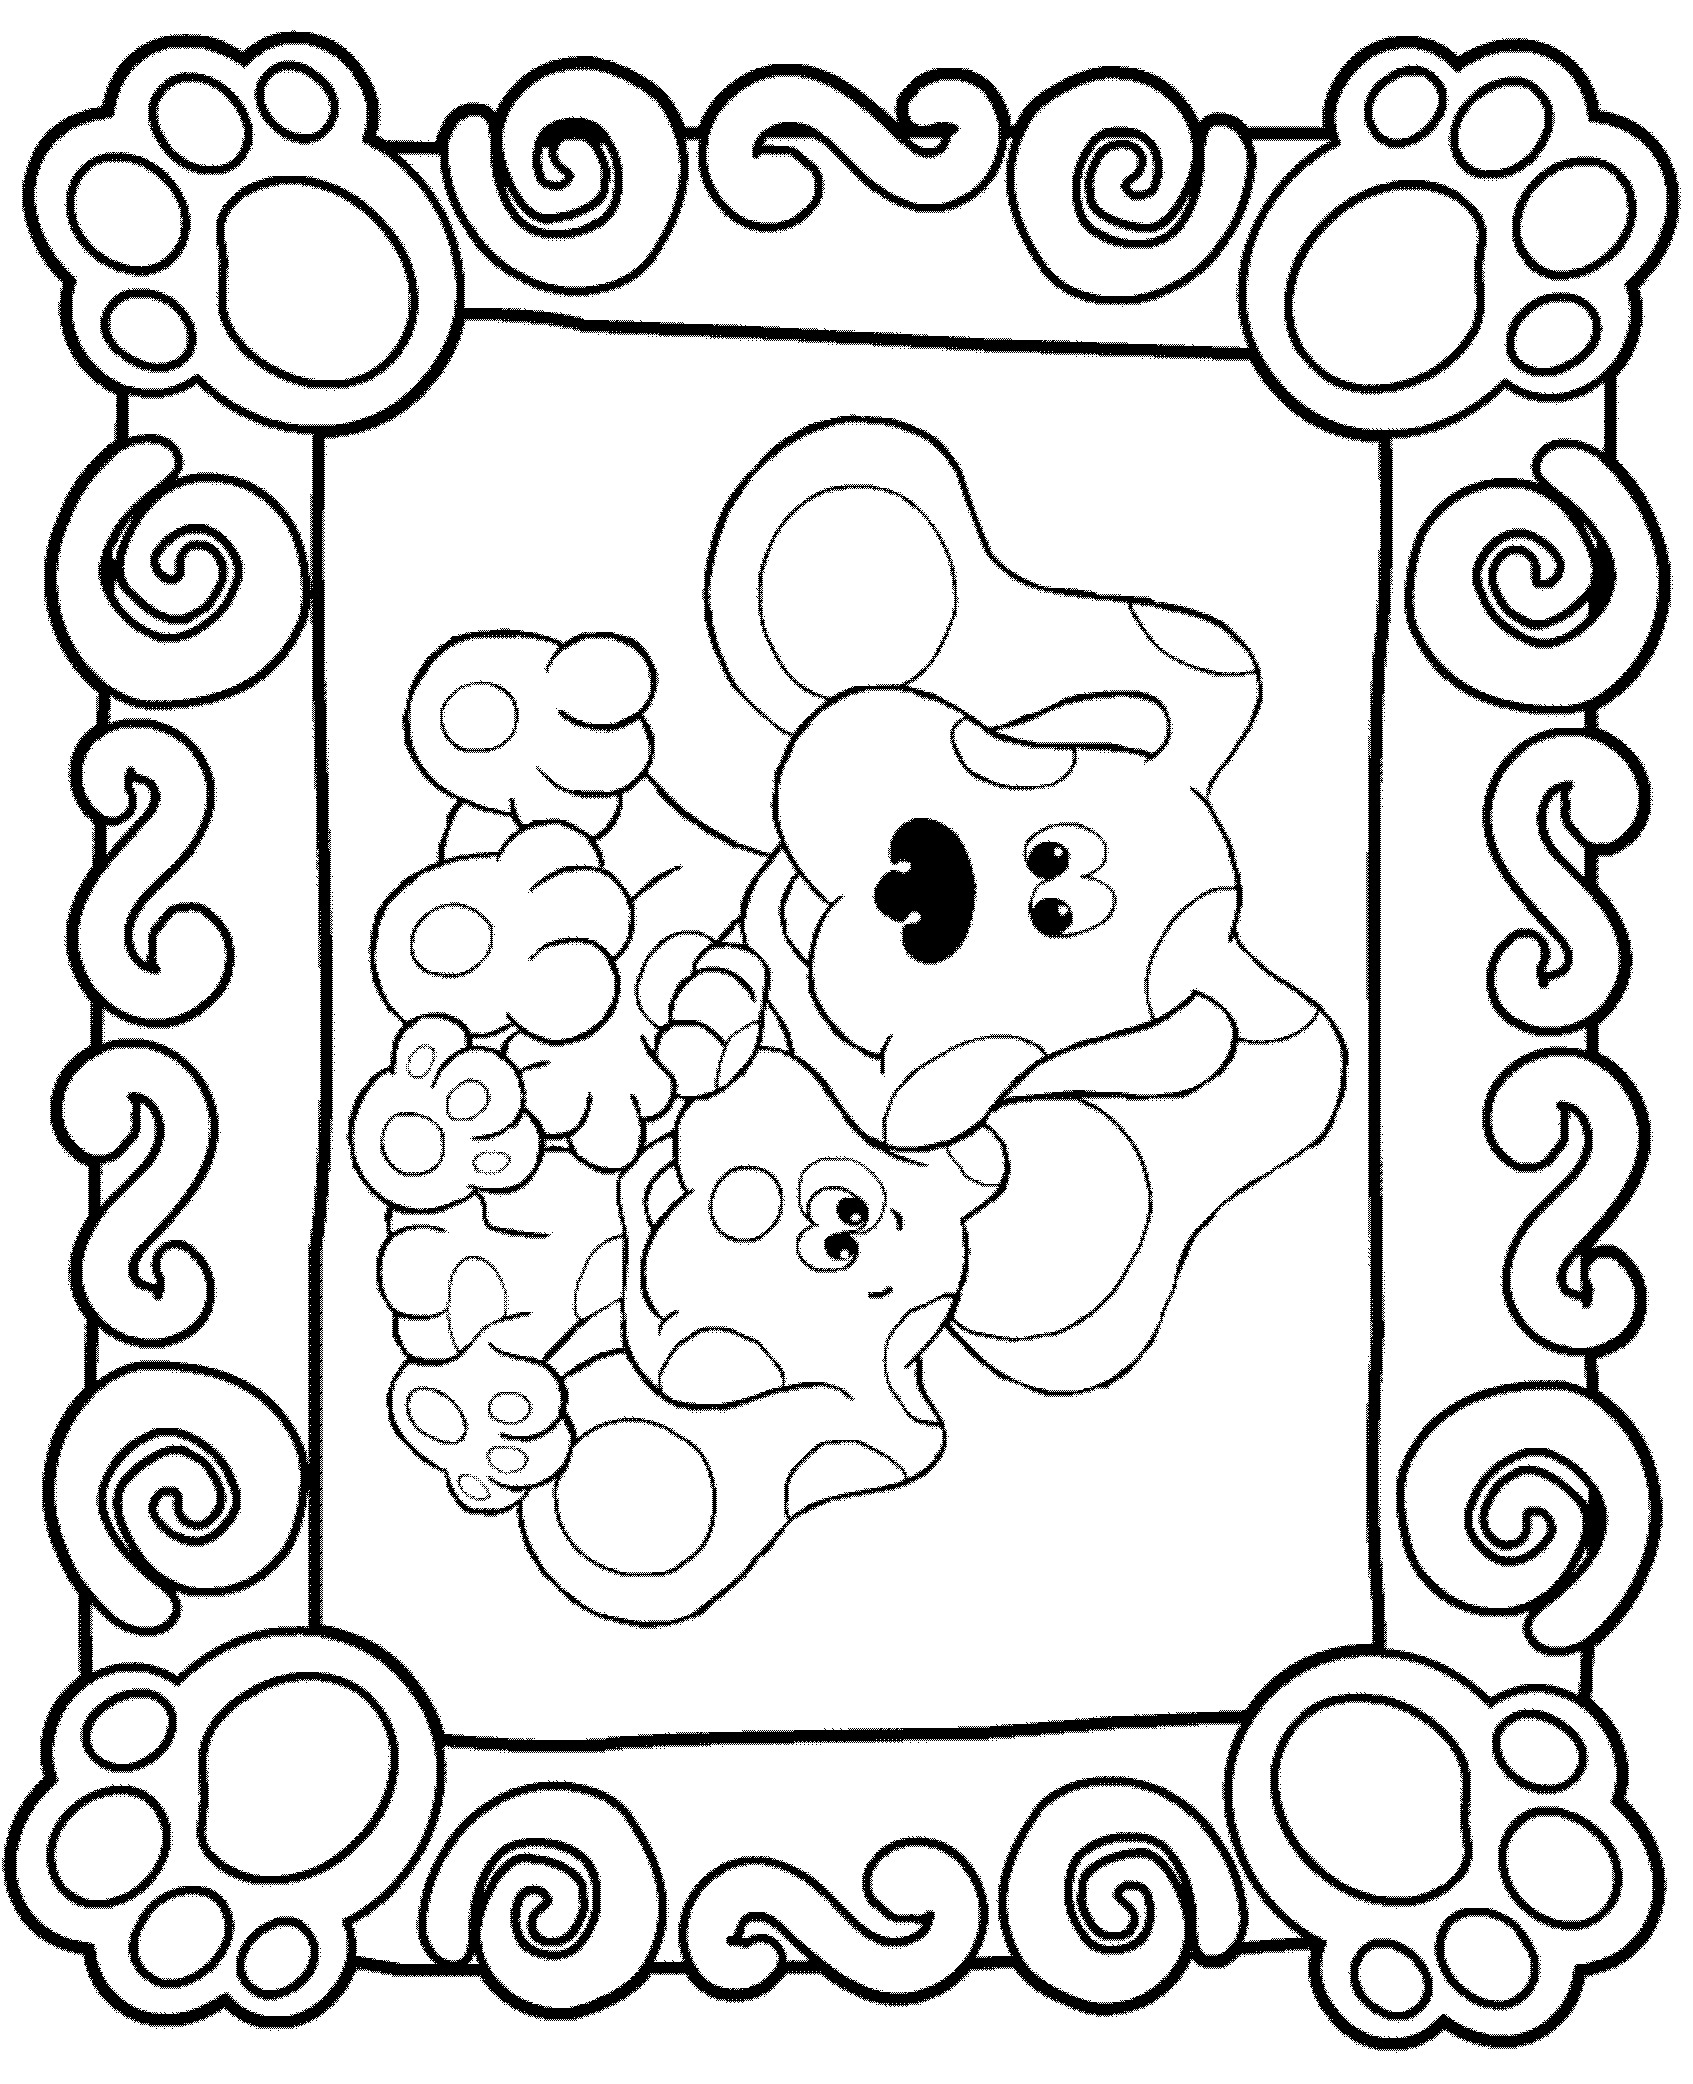 n 15 coloring pages of blues clues